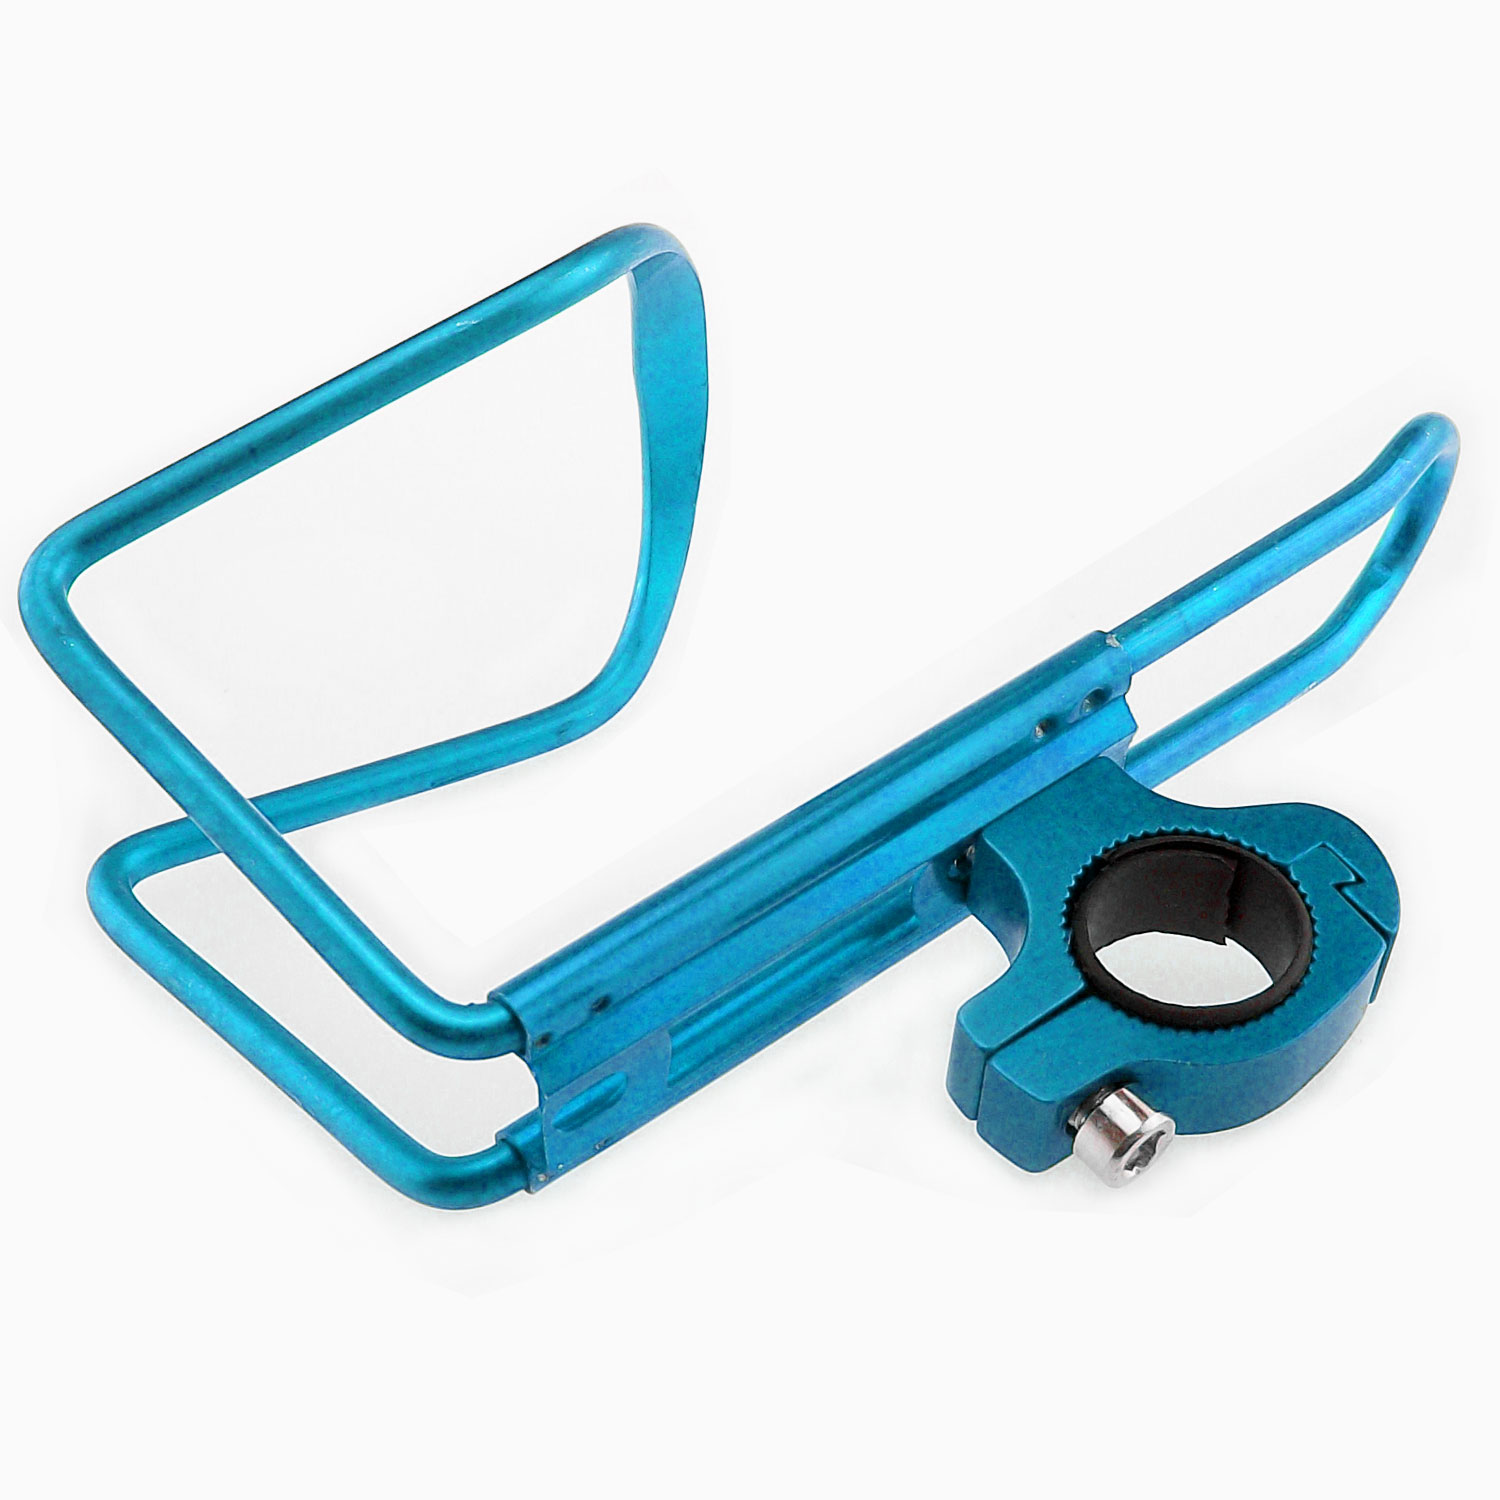 TrendBox Alloy Bicycle Bike Water Bottle Cage For Sports Drinking Racing Outdoor Mountain Hiking Lightweight Easy to install - Blue